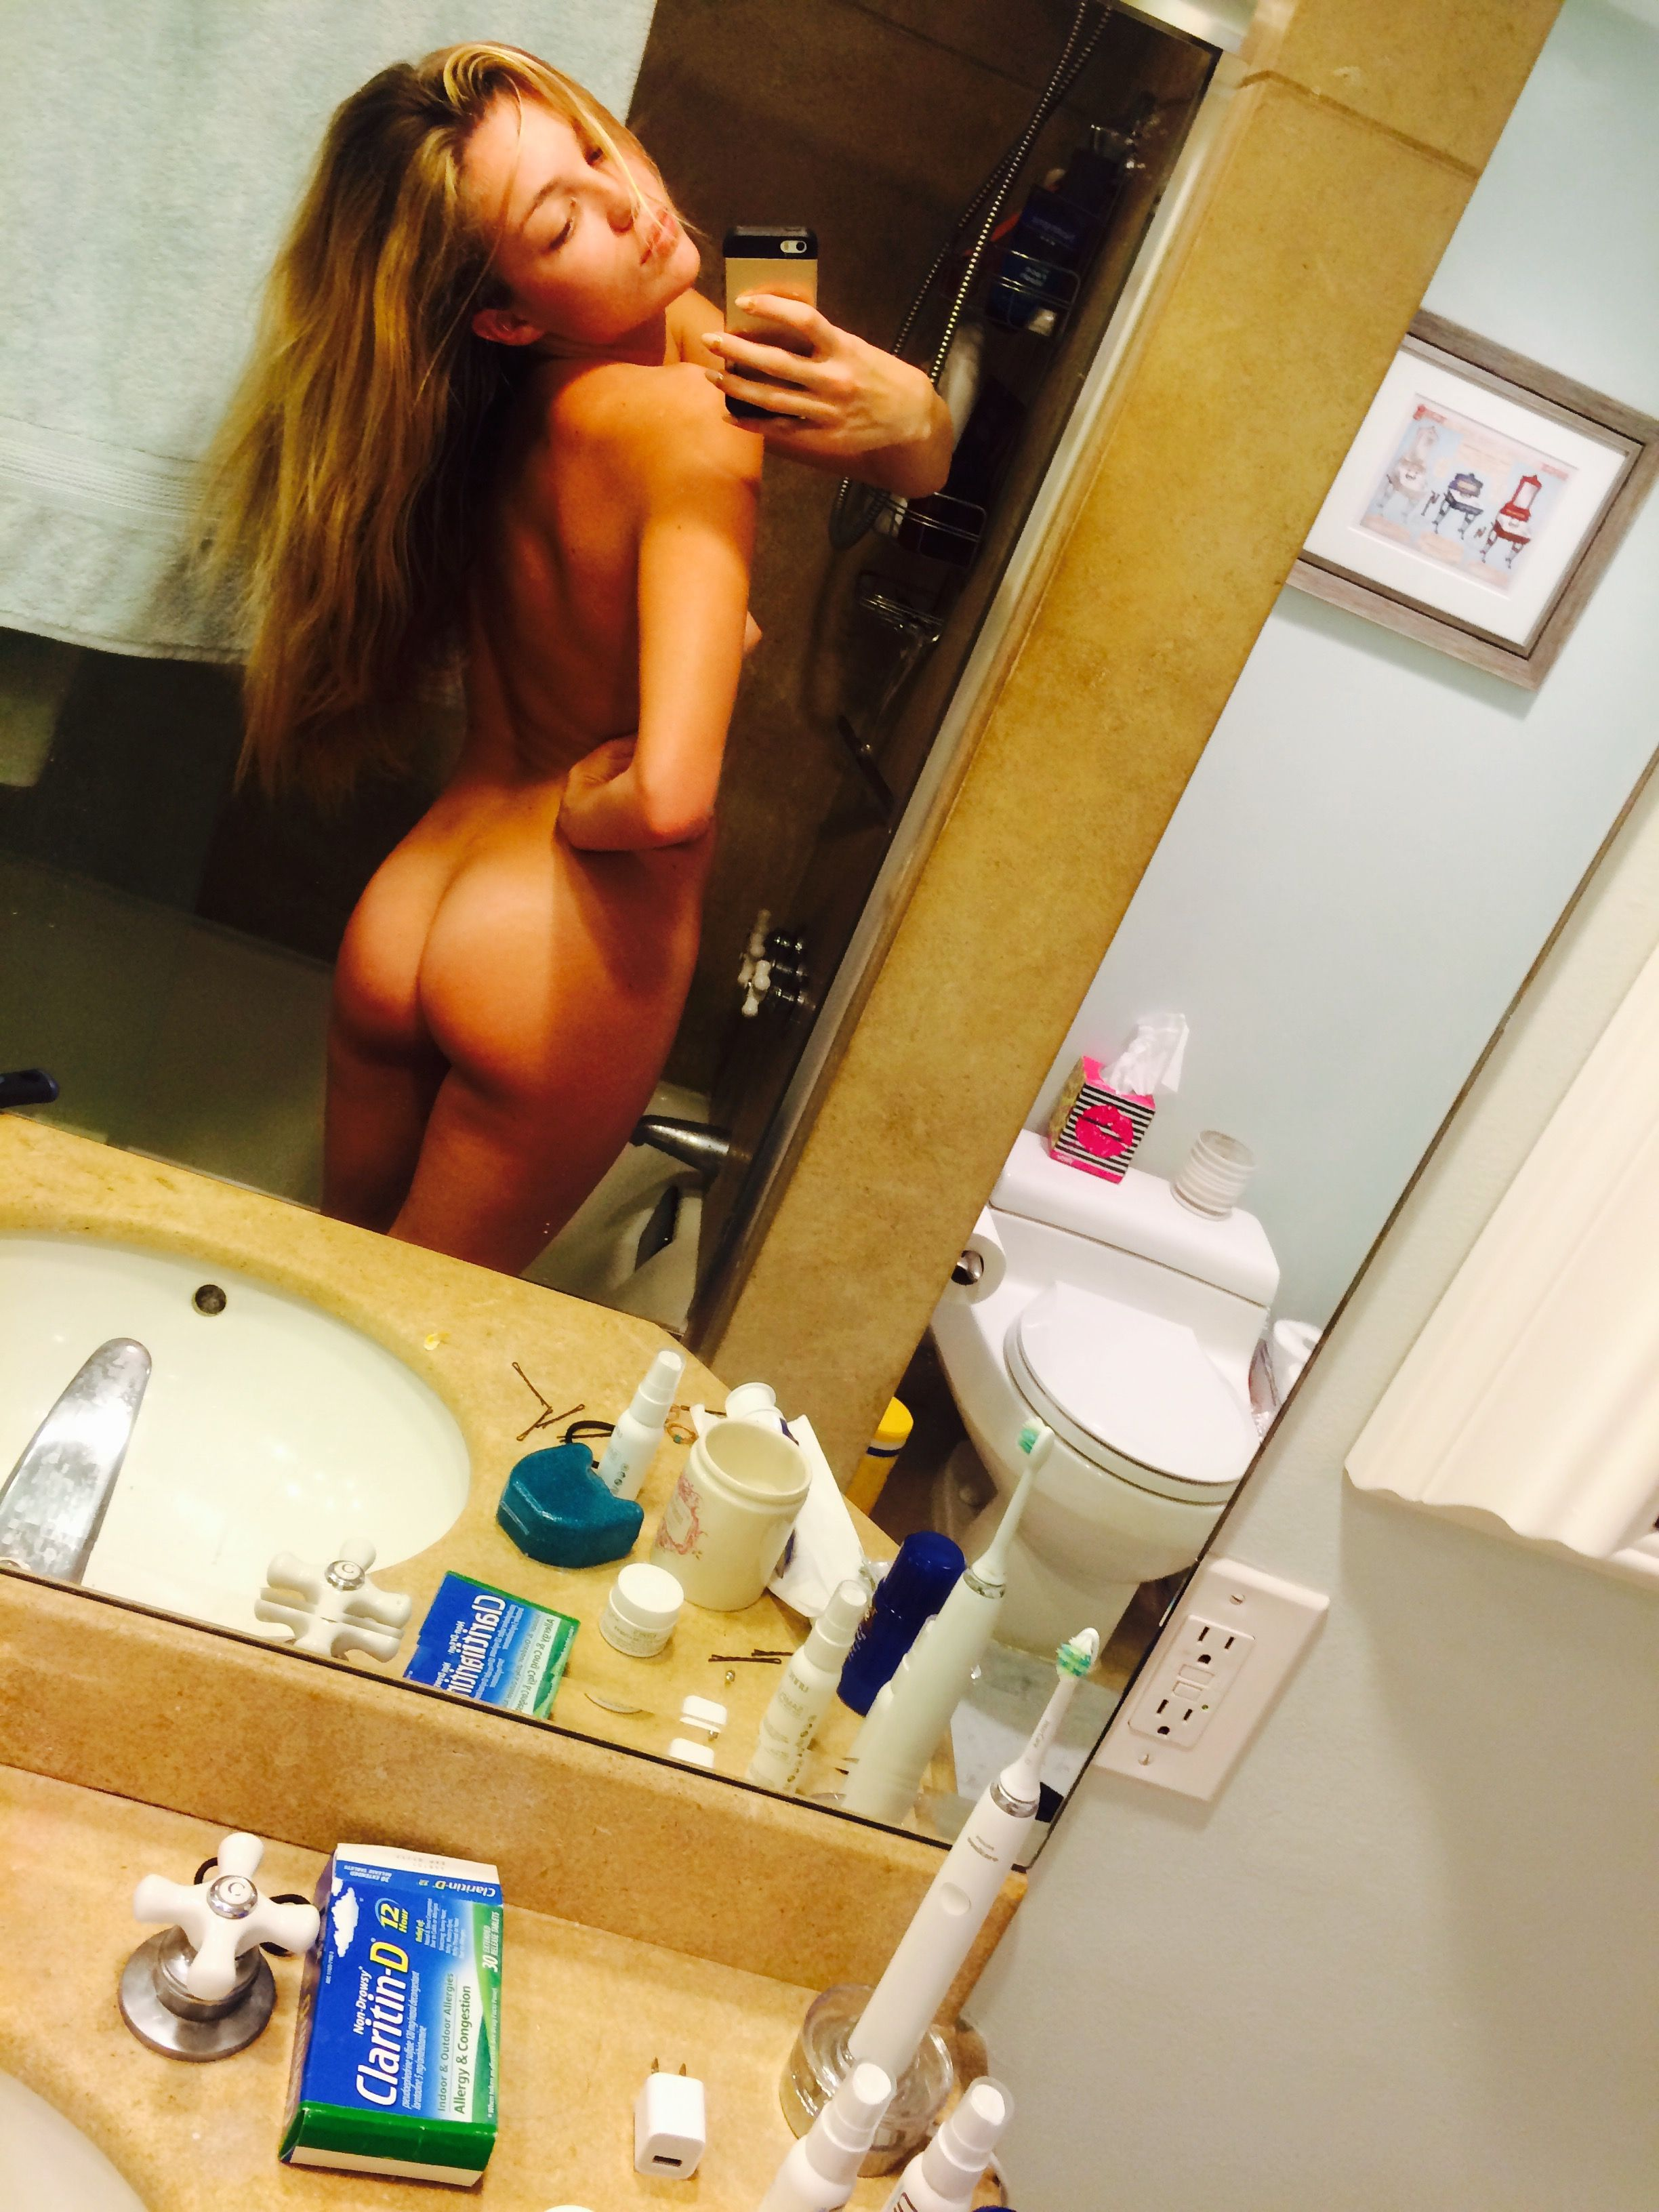 Lili-Simmons-Leaked-33-thefappening.nu_45ebe.jpg